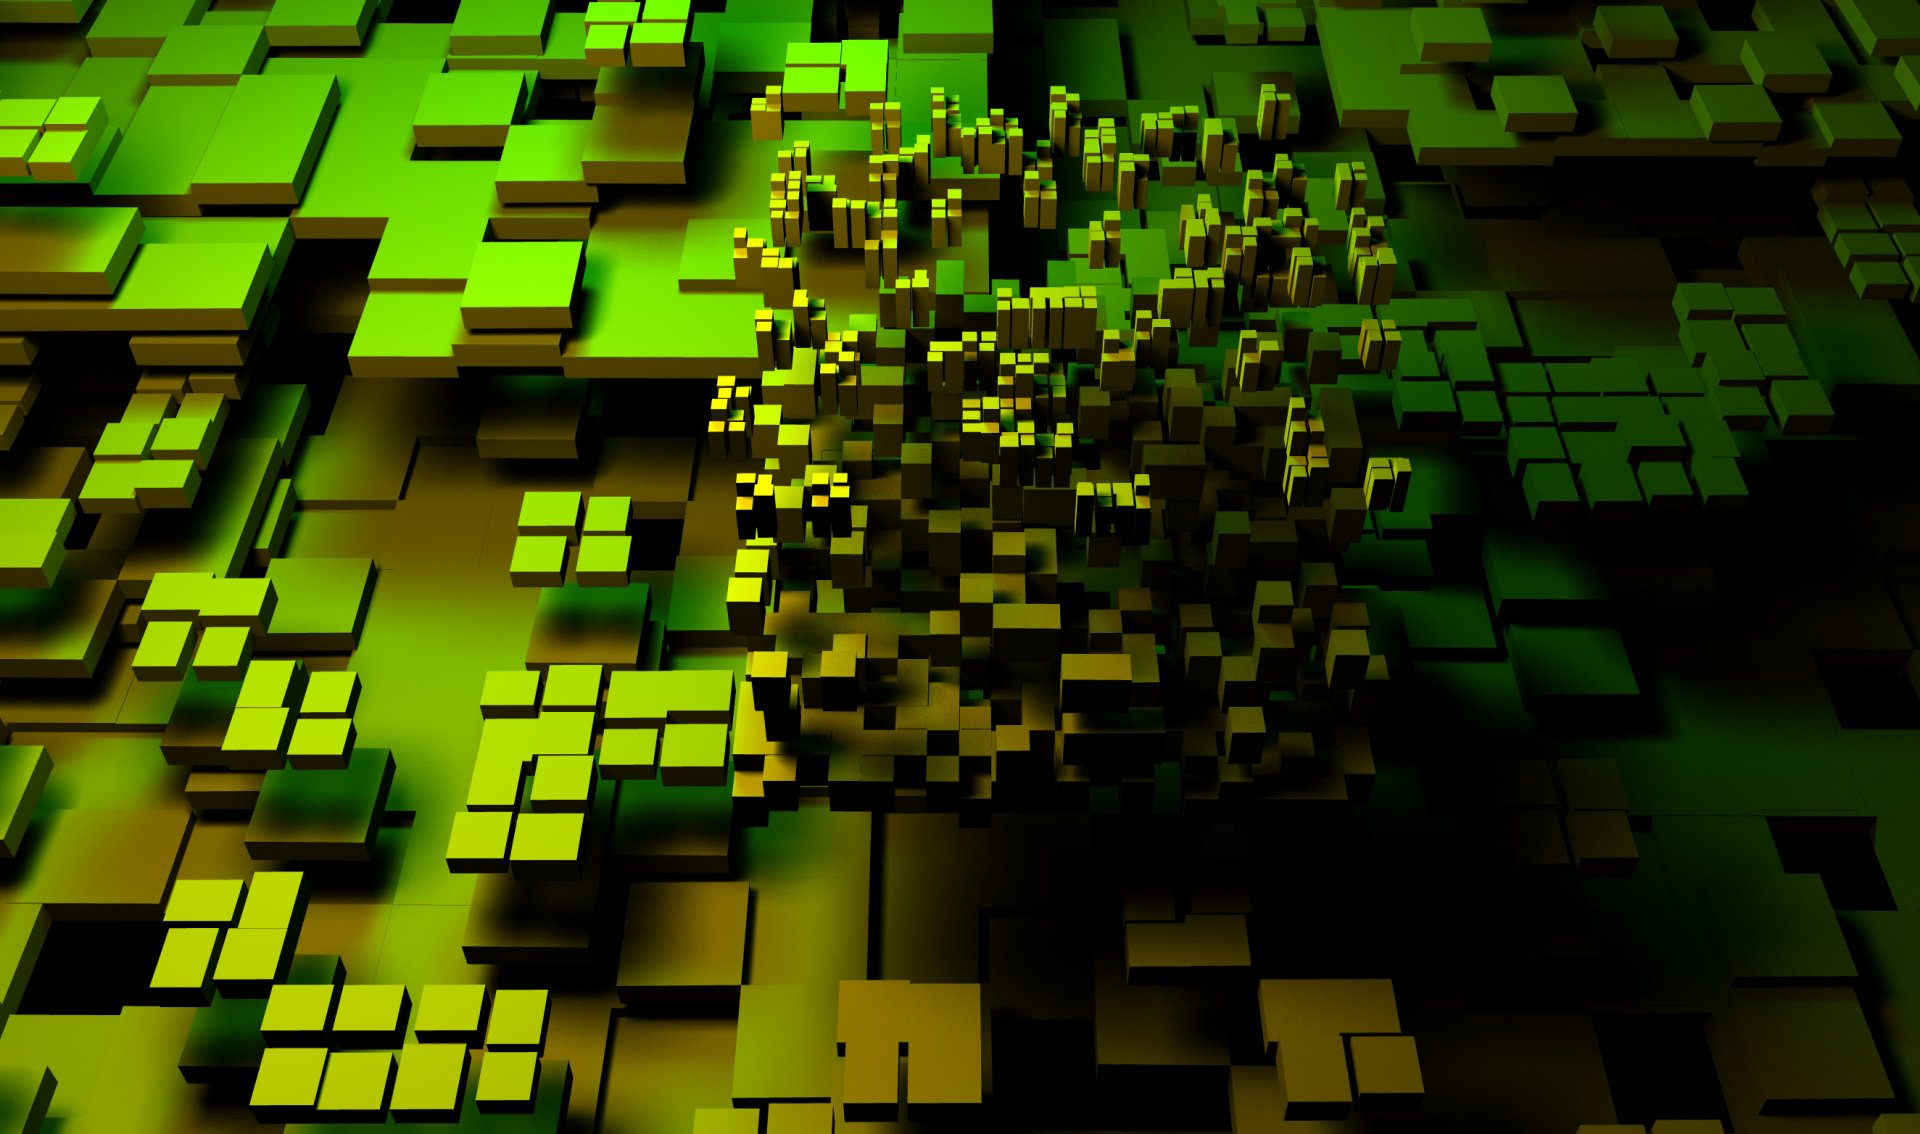 CGI - 3D  Cube Green Dark Abstract Digital Art Wallpaper